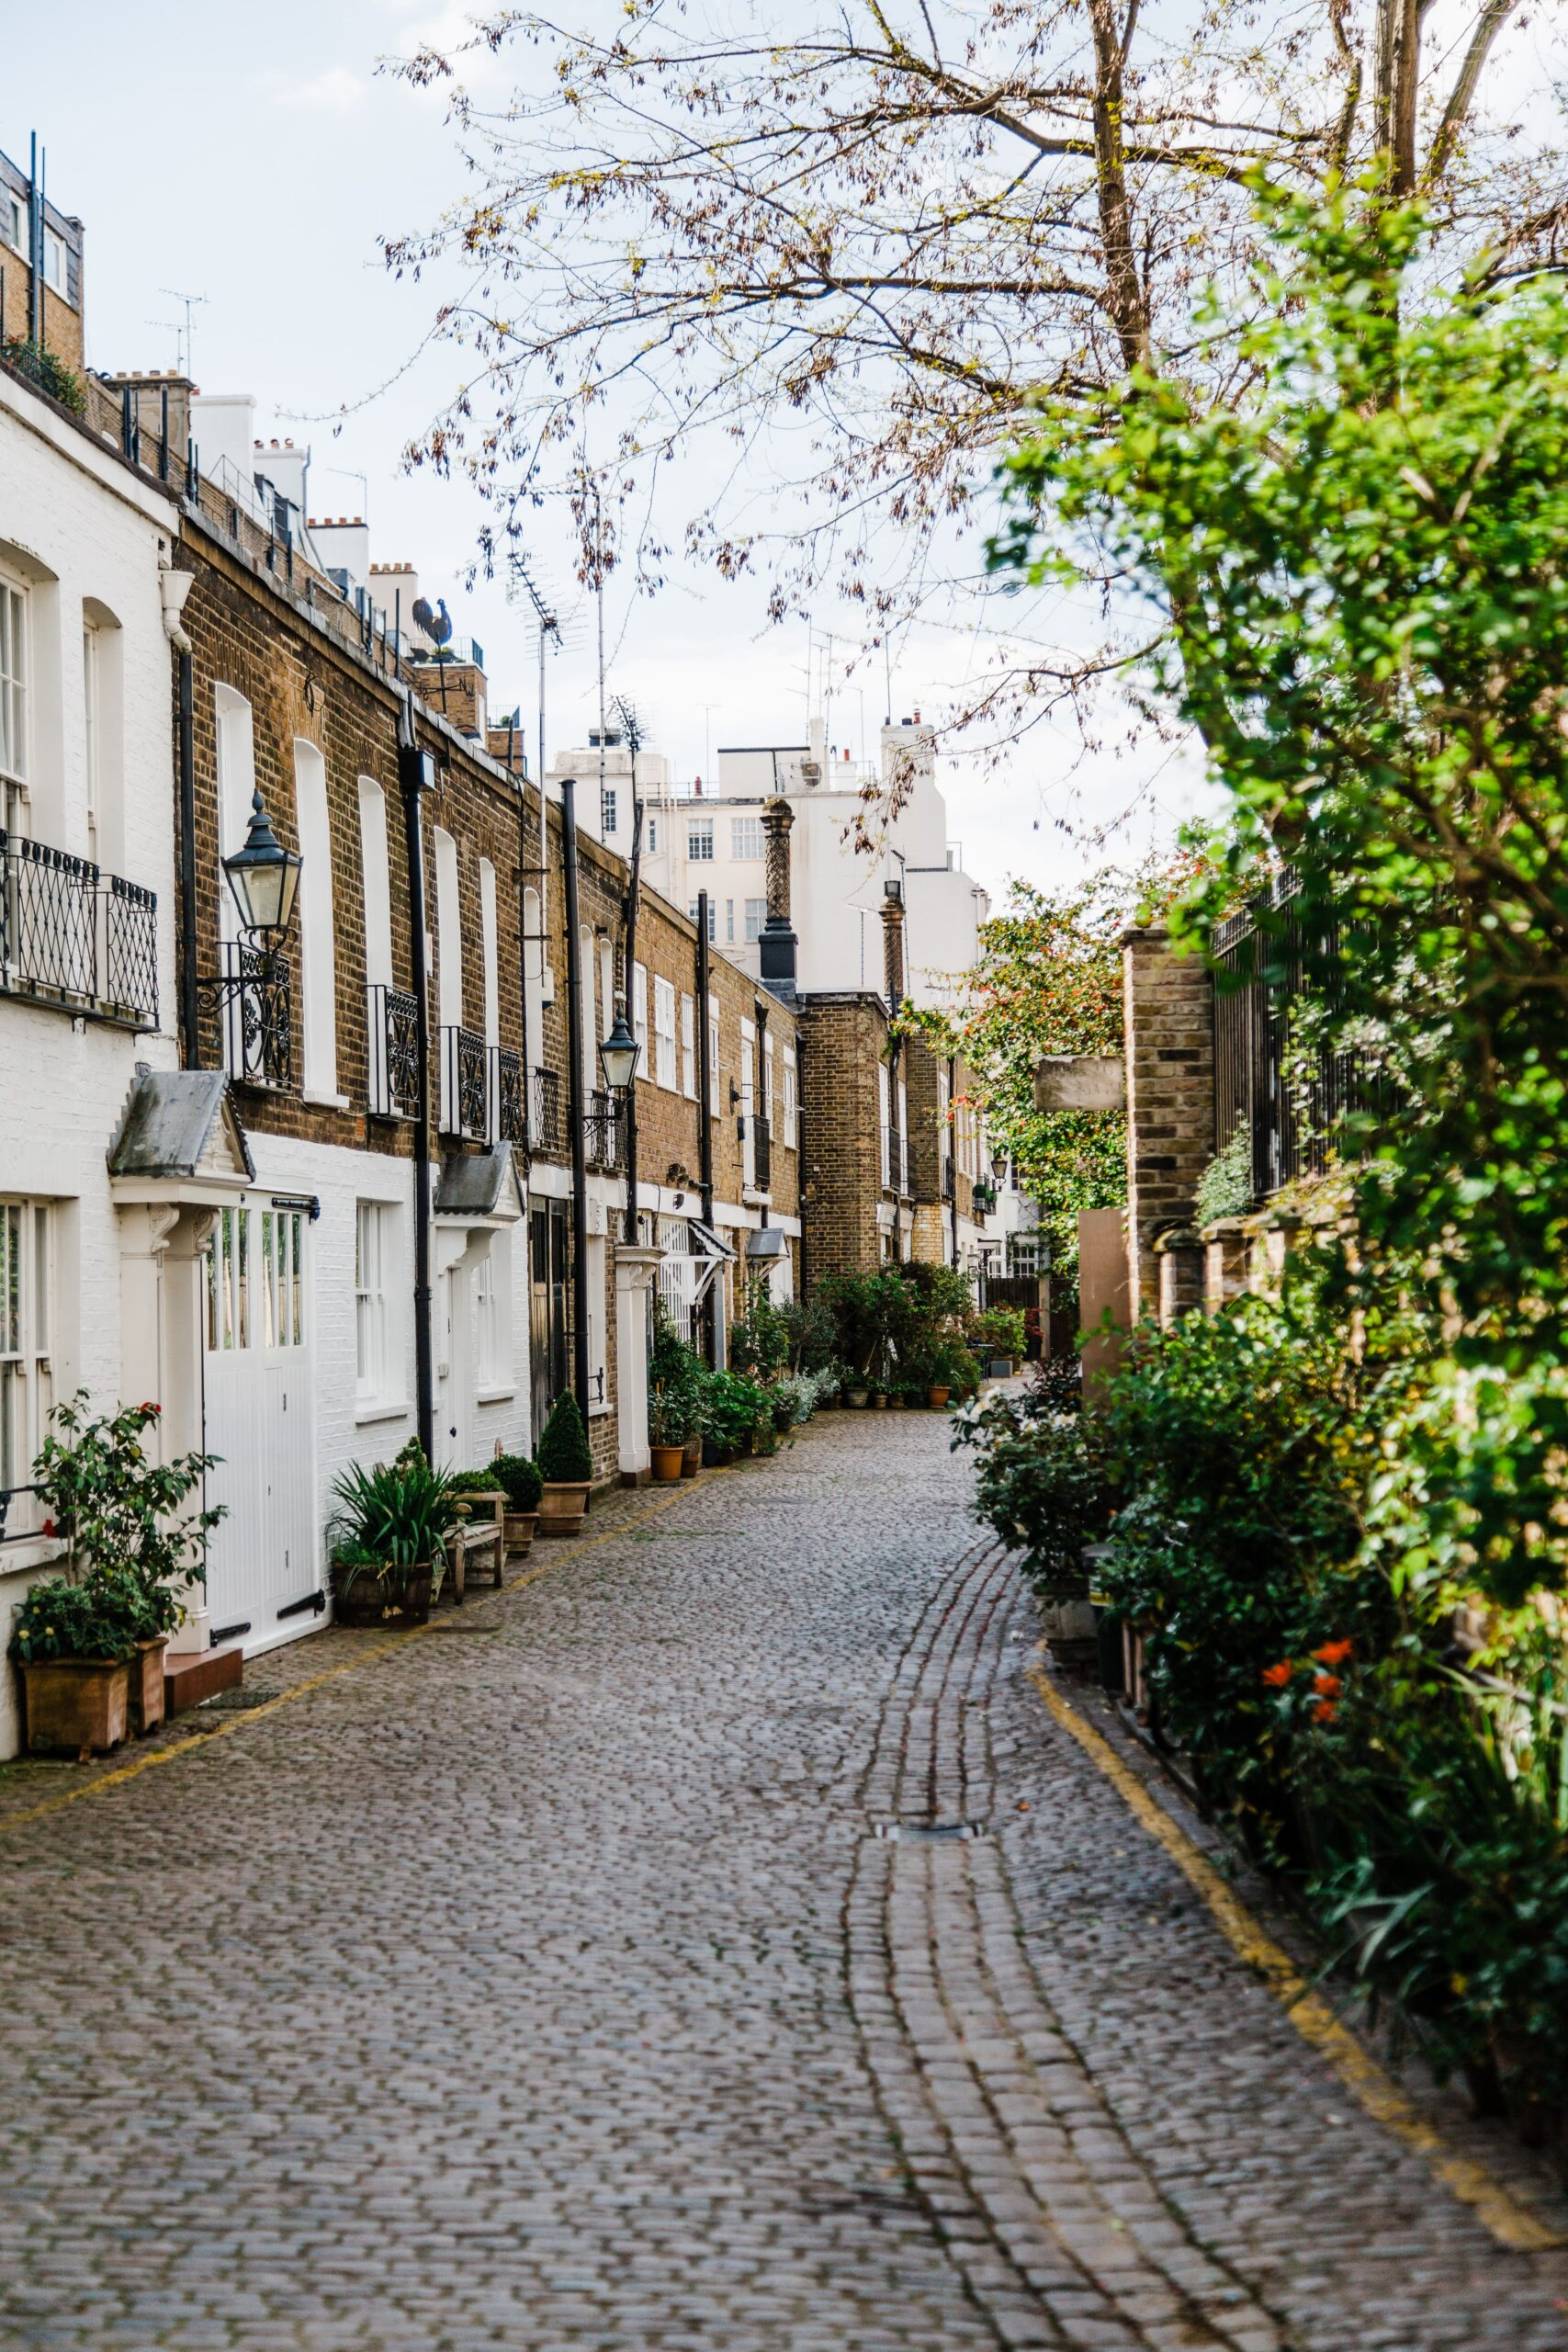 bruno-martins-row of townhomes cobbled brick path gardens on right side-unsplash